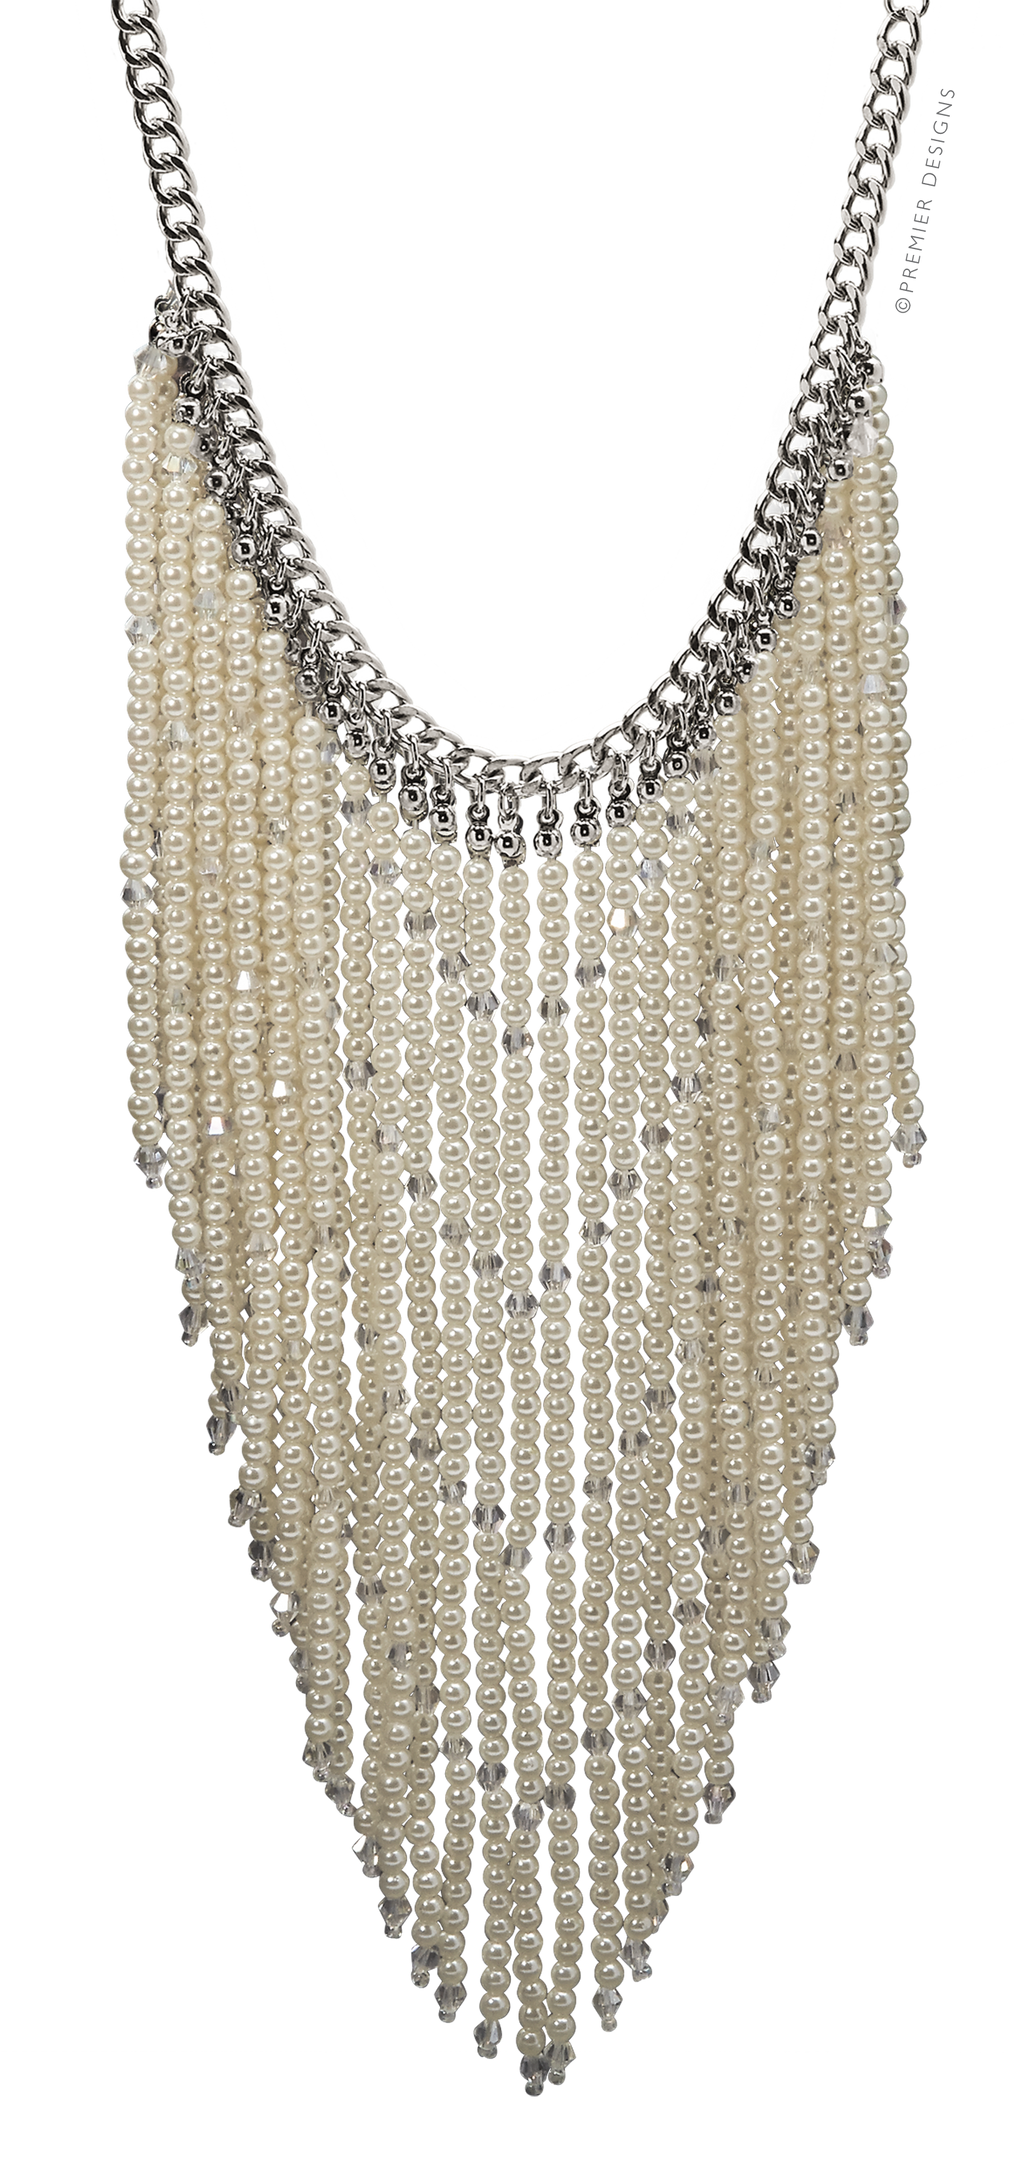 Premier designs jewelry 2015 - Pearl Fection 1 Png